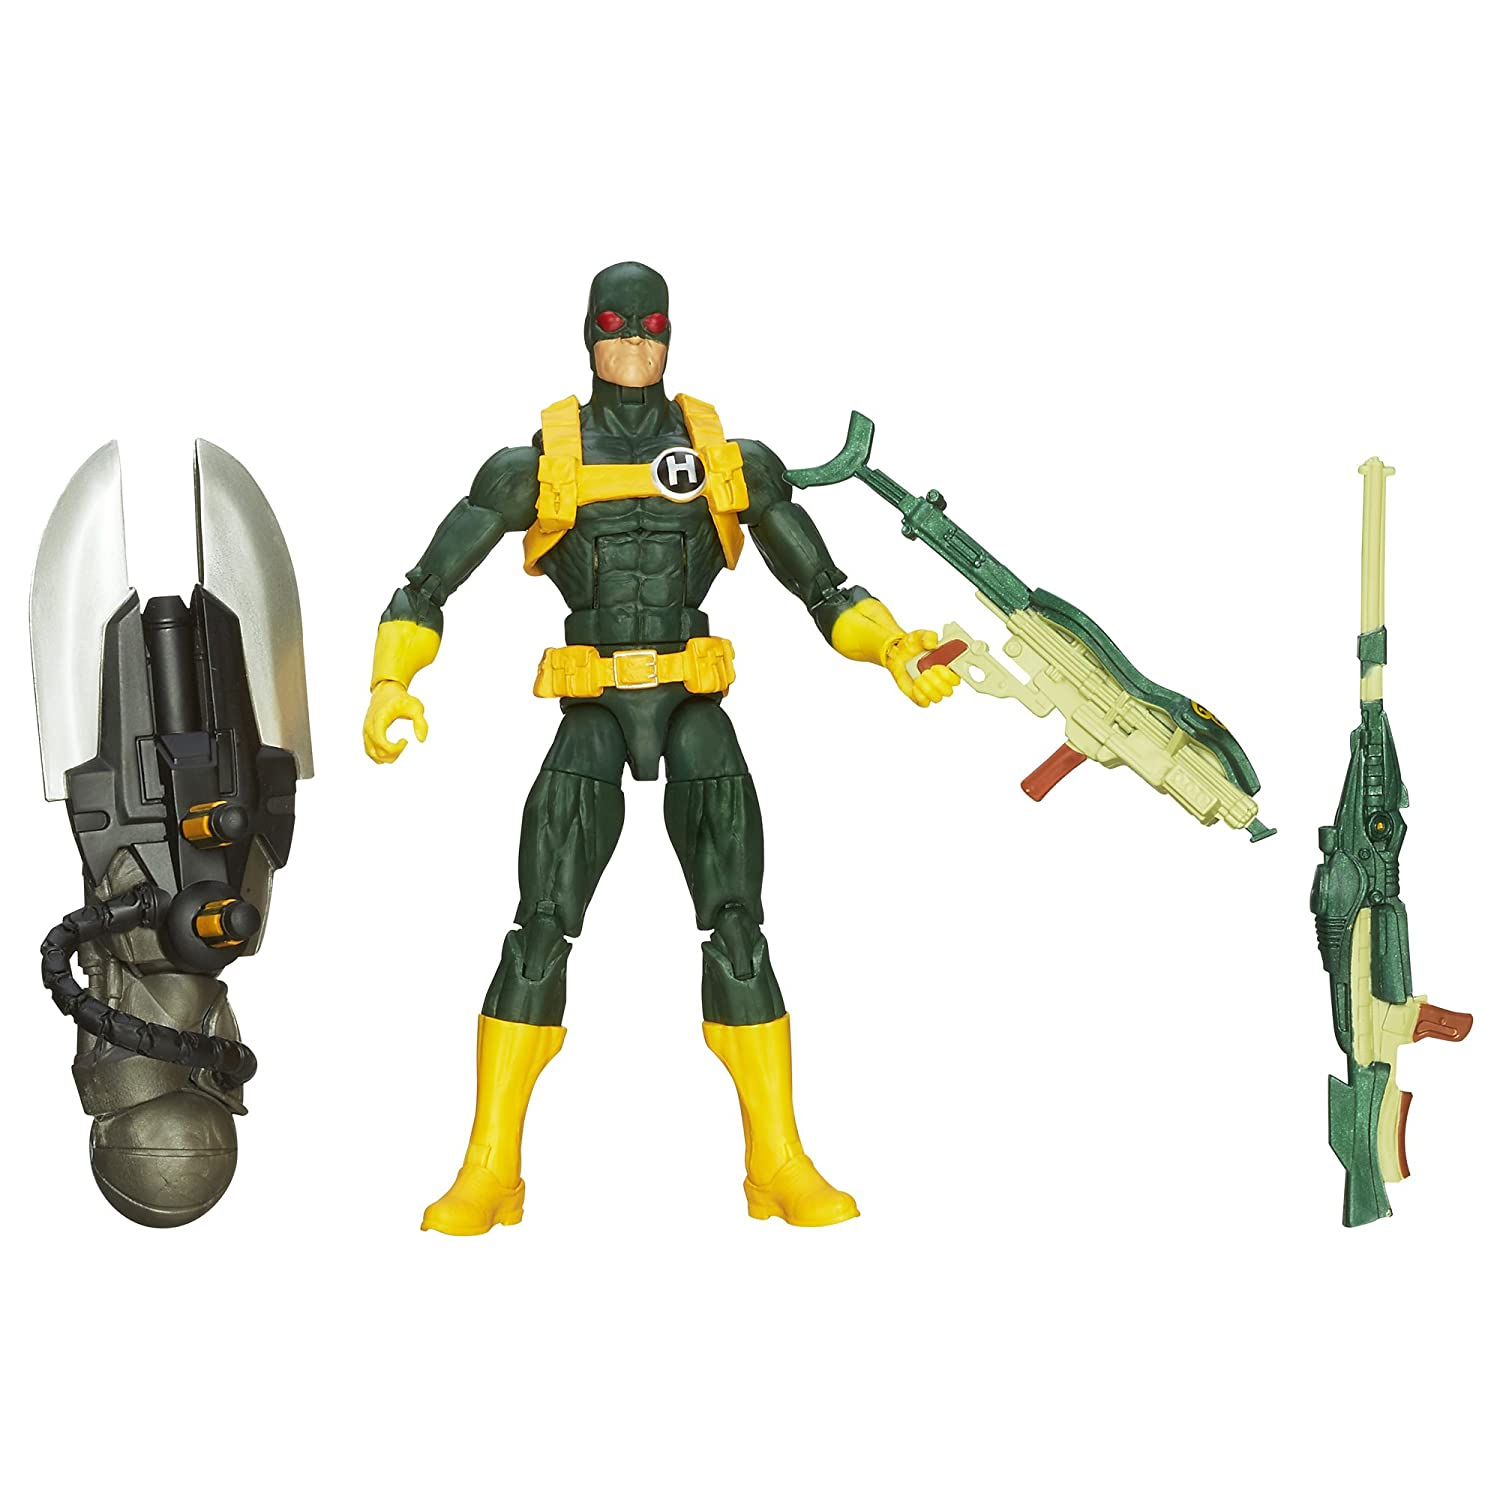 6 Inches Hasbro A6223199 Captain America Marvel Legends Agents of Hydra Action Figure Hydra Soldier